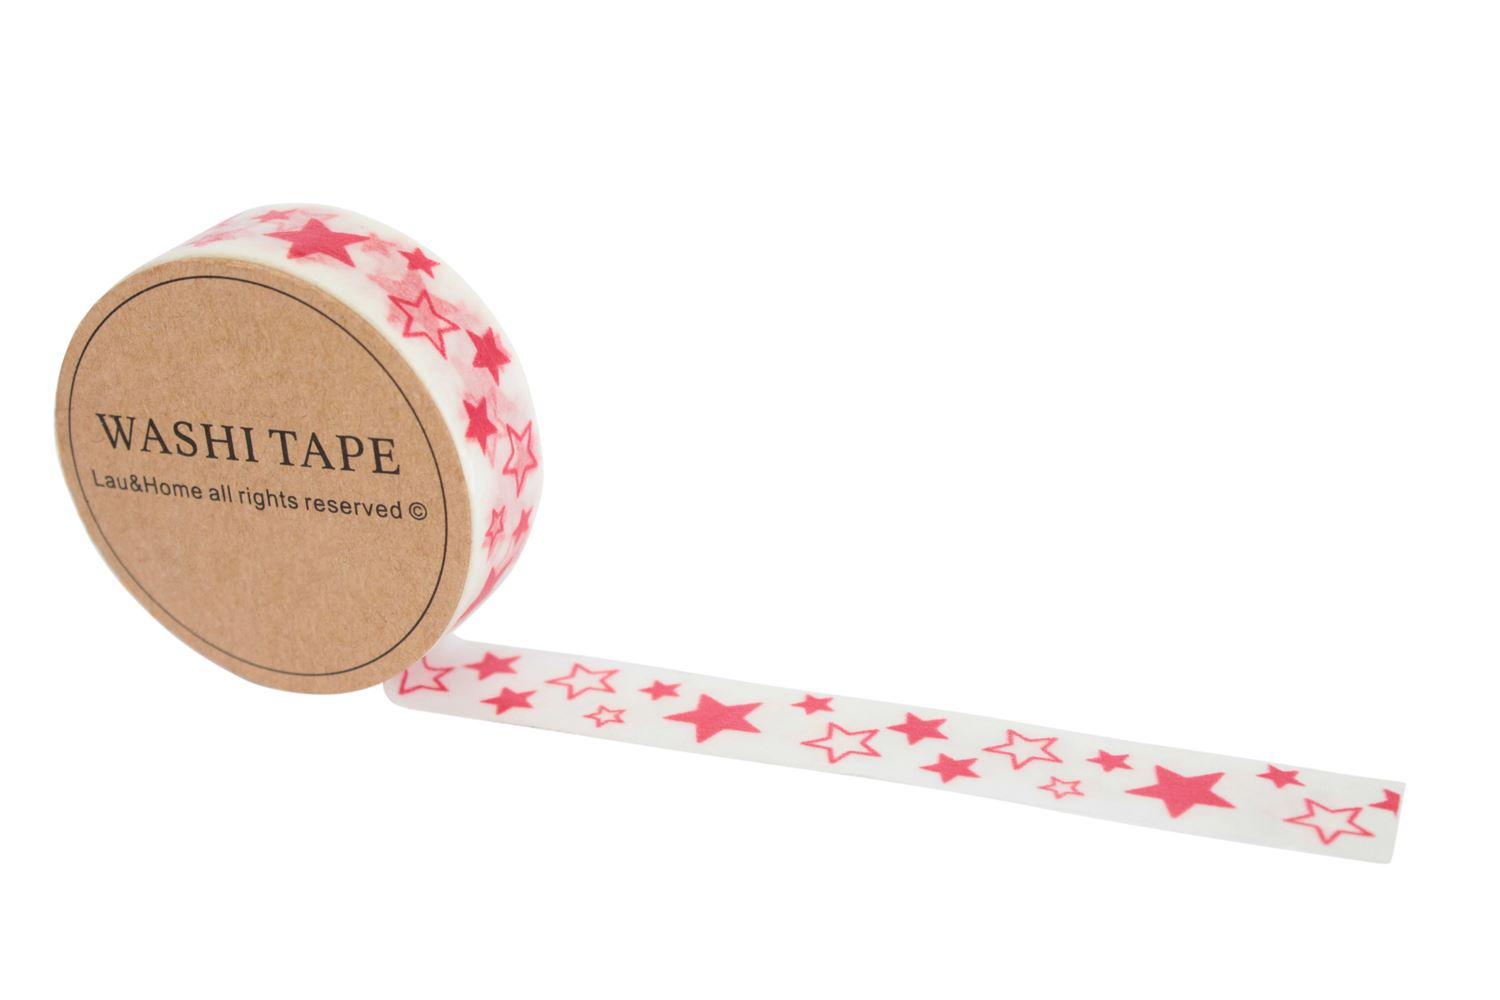 Washi tape 10m roll decorative sticky paper masking tape for Sticky paper for crafts